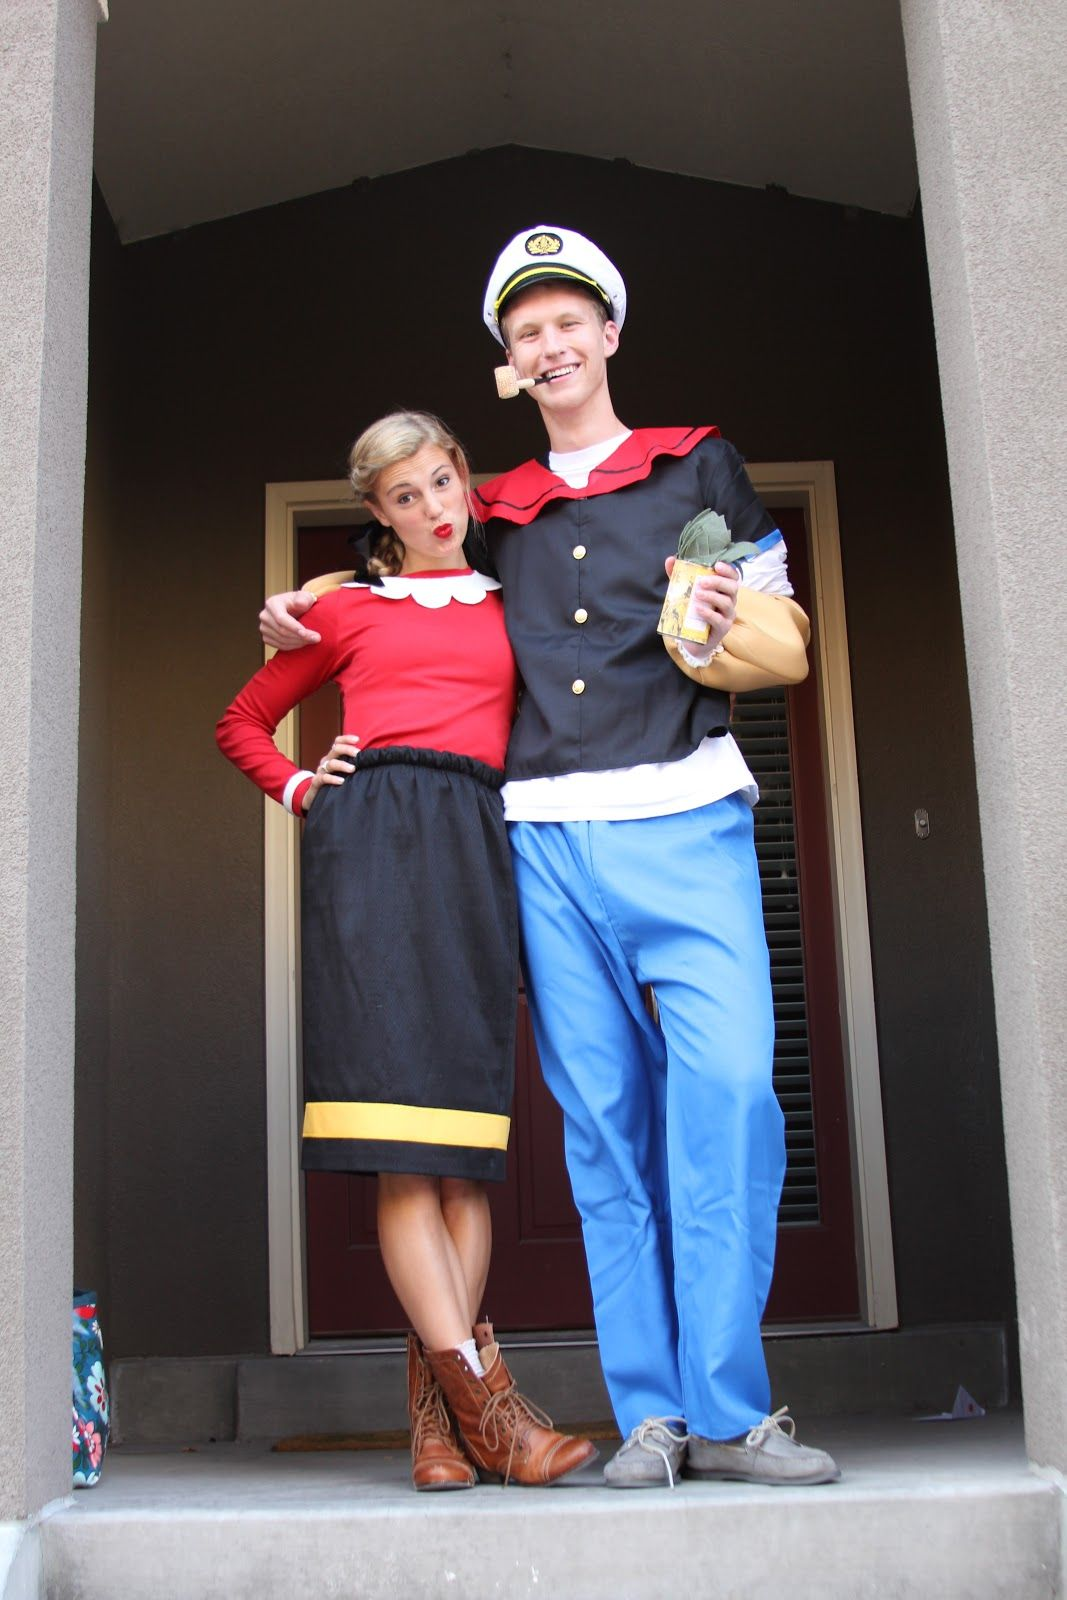 Popeye and olive oyl theres always next year halloween popeye and olive oyl solutioingenieria Images